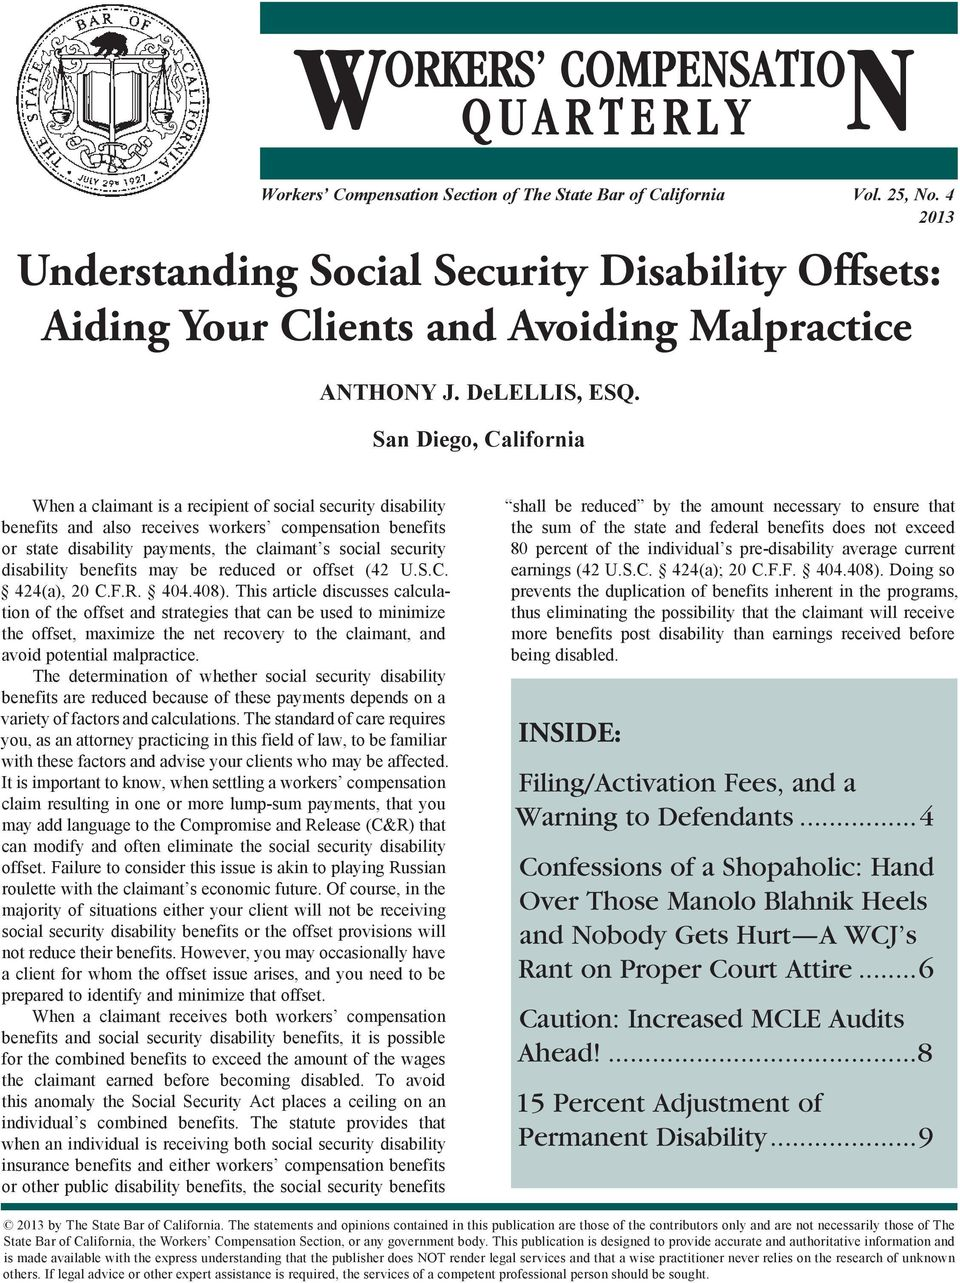 security disability benefits may be reduced or offset (42 U.S.C. 424(a), 20 C.F.R. 404.408).